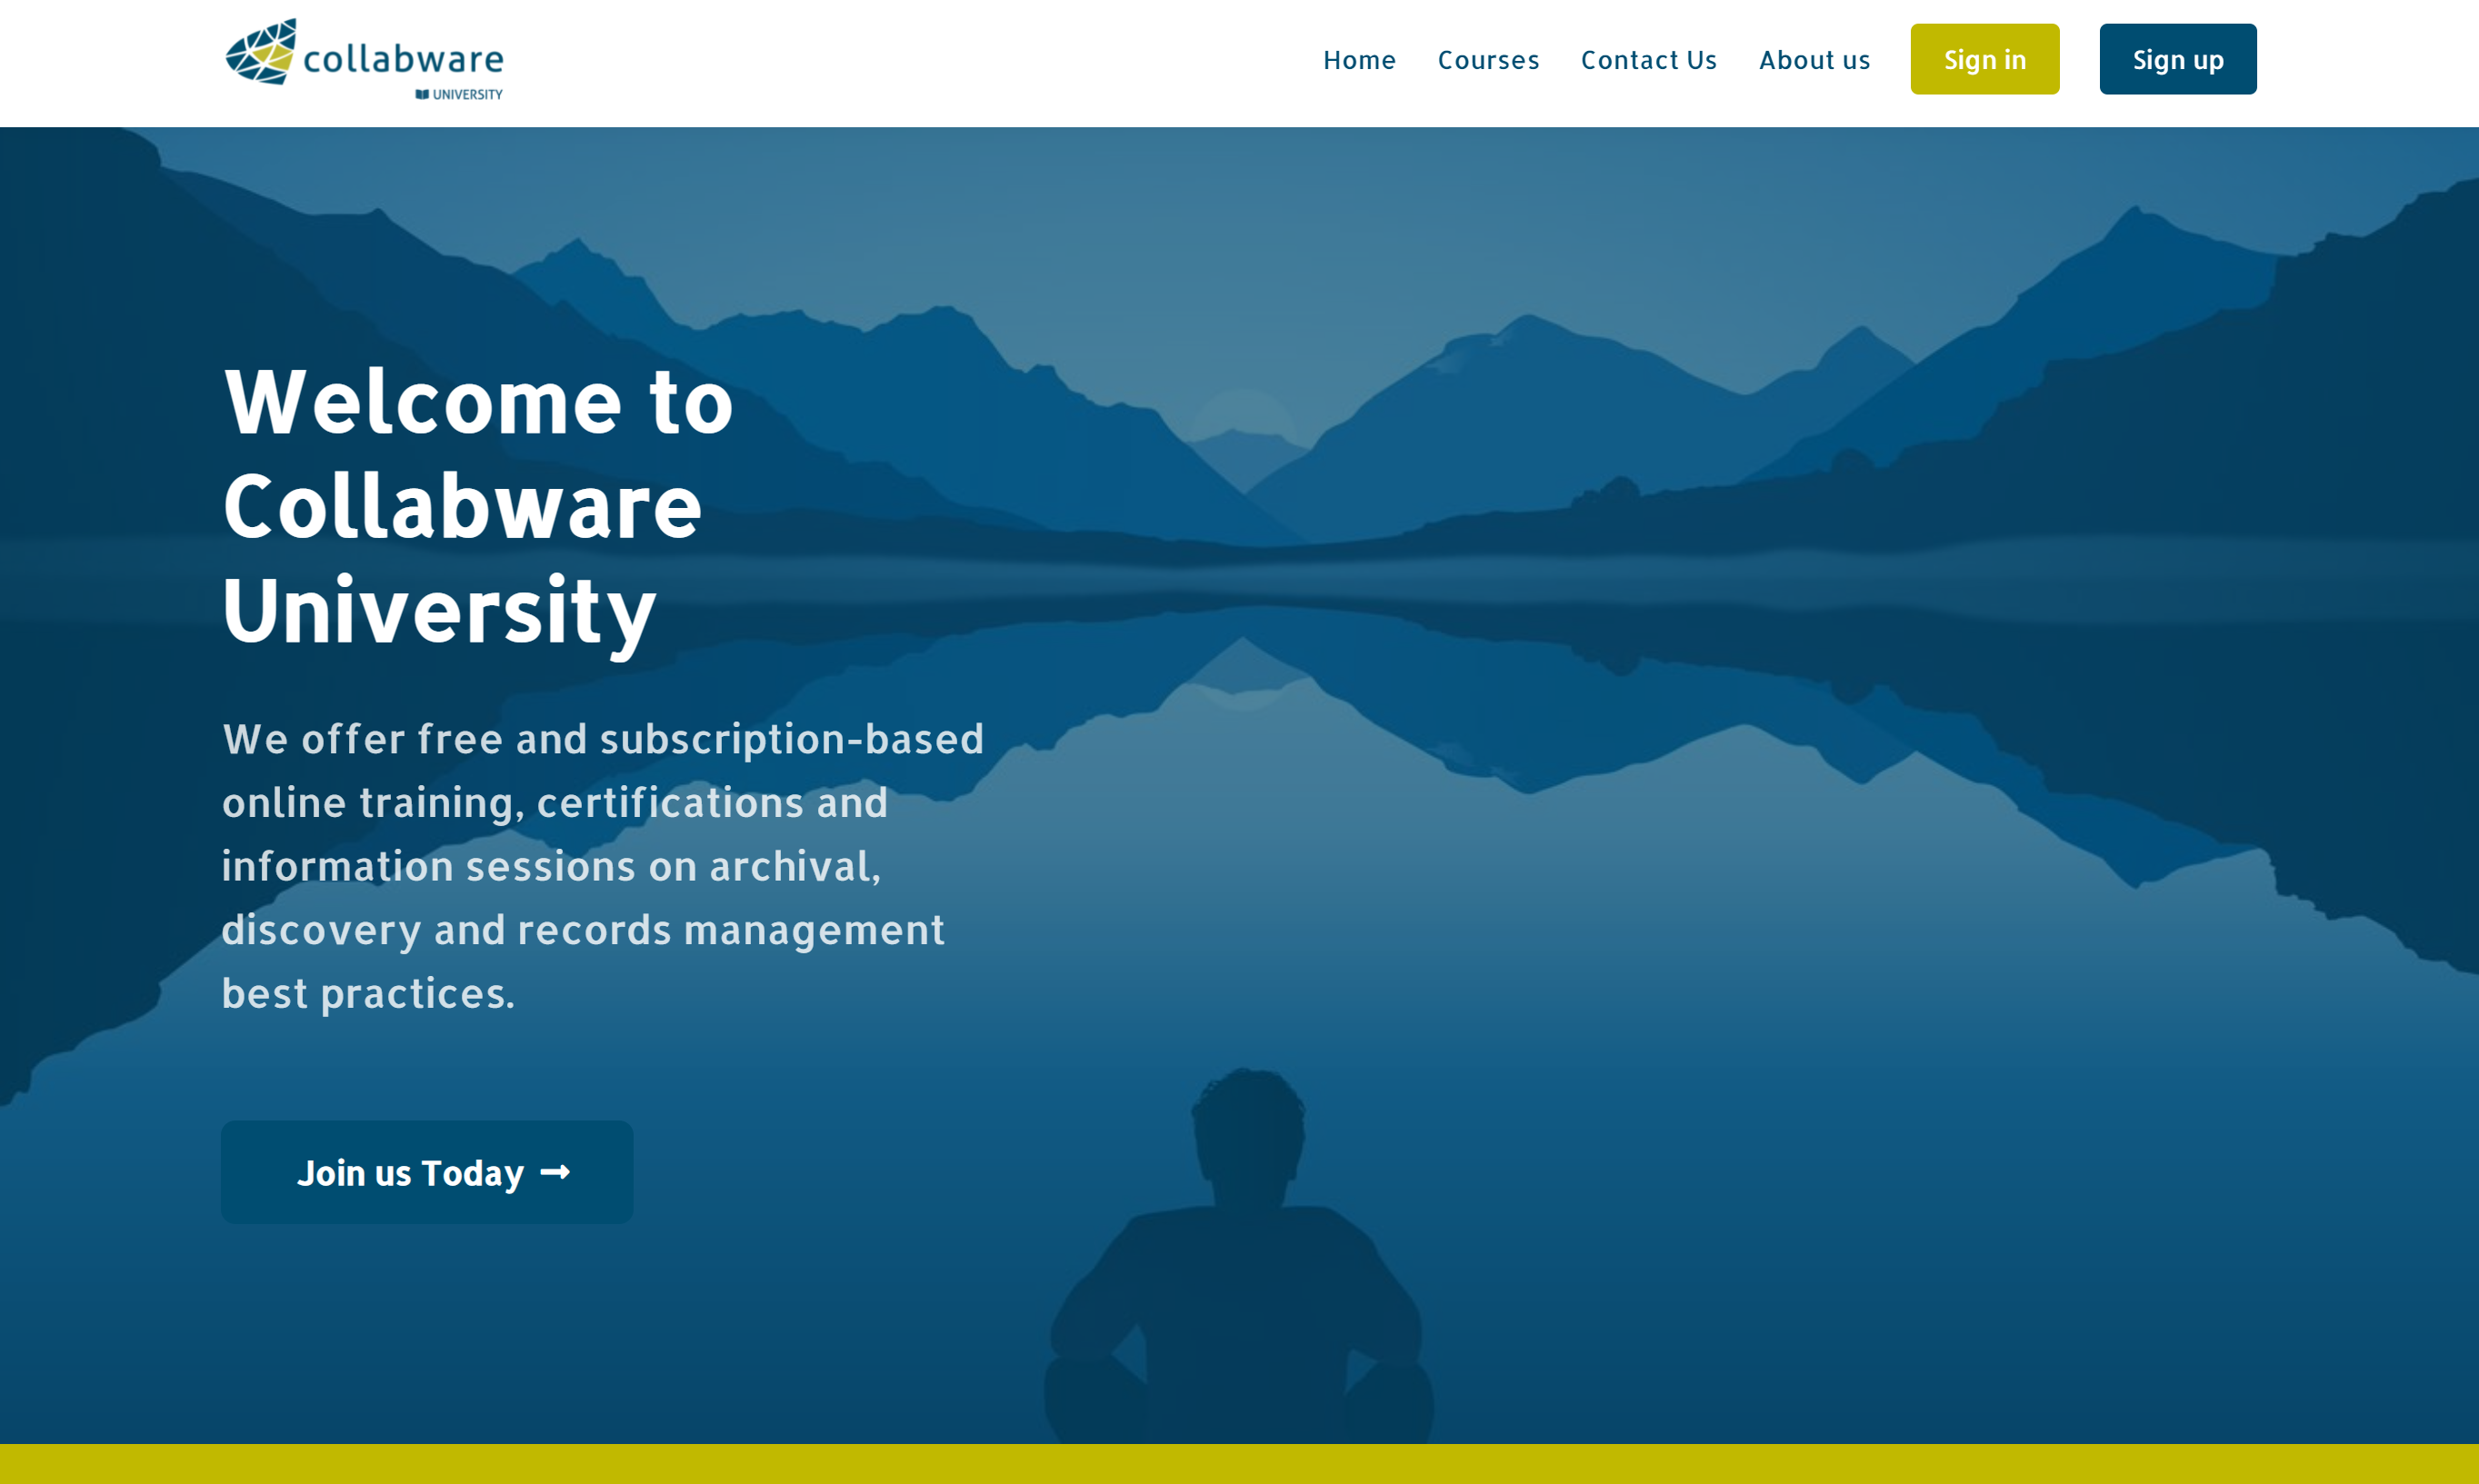 Collabware University Home Page